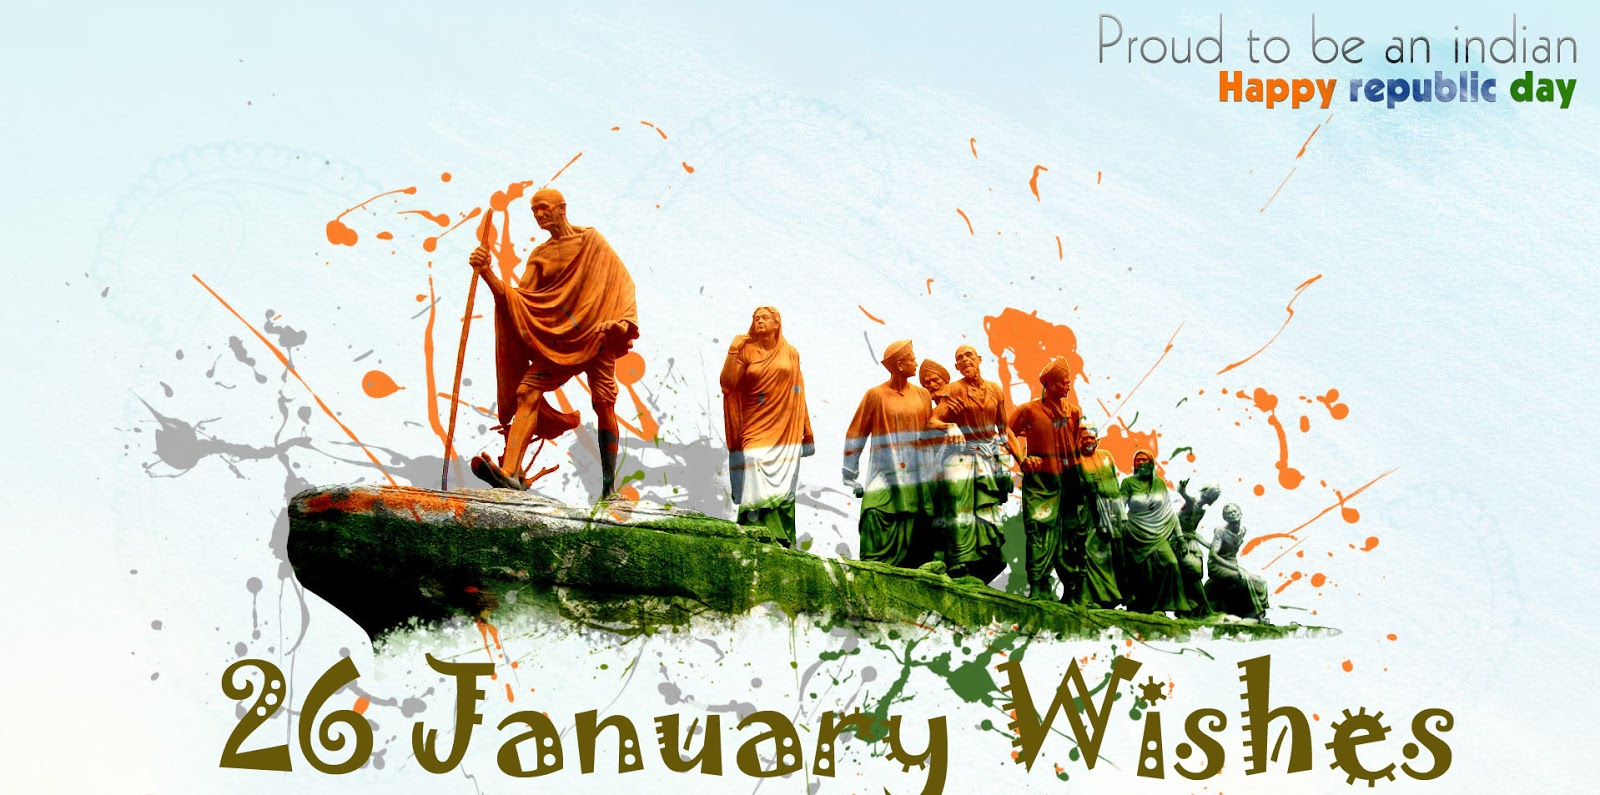 26 Jan India Republic Day HD Wallpapers Images Photos Pics - Free Download